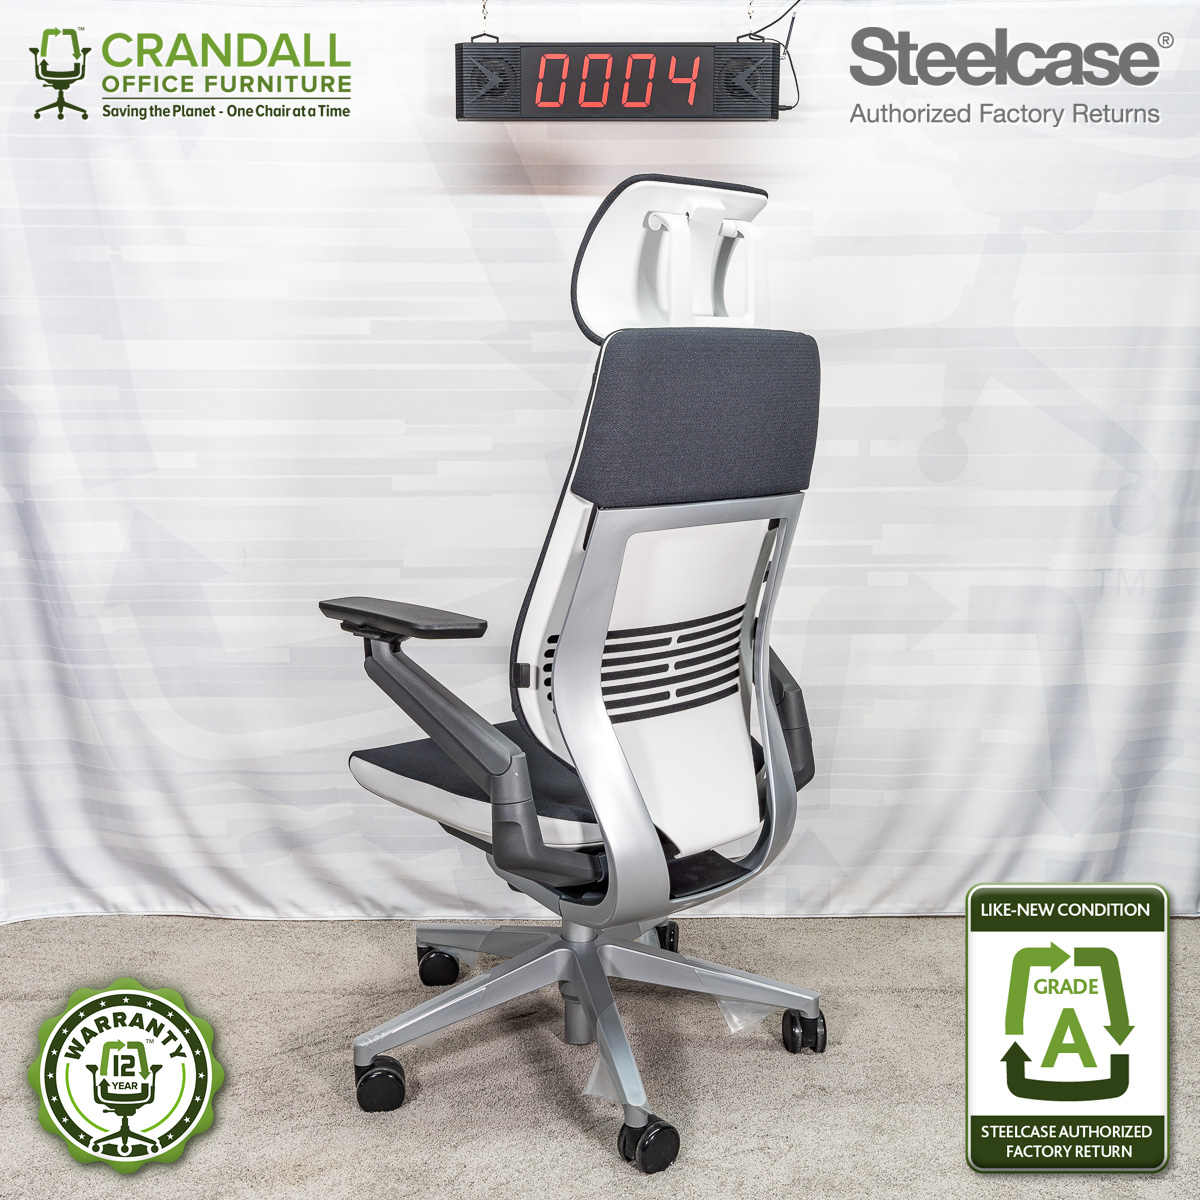 Steelcase Authorized Factory Returns - Steelcase Gesture - 0004 2